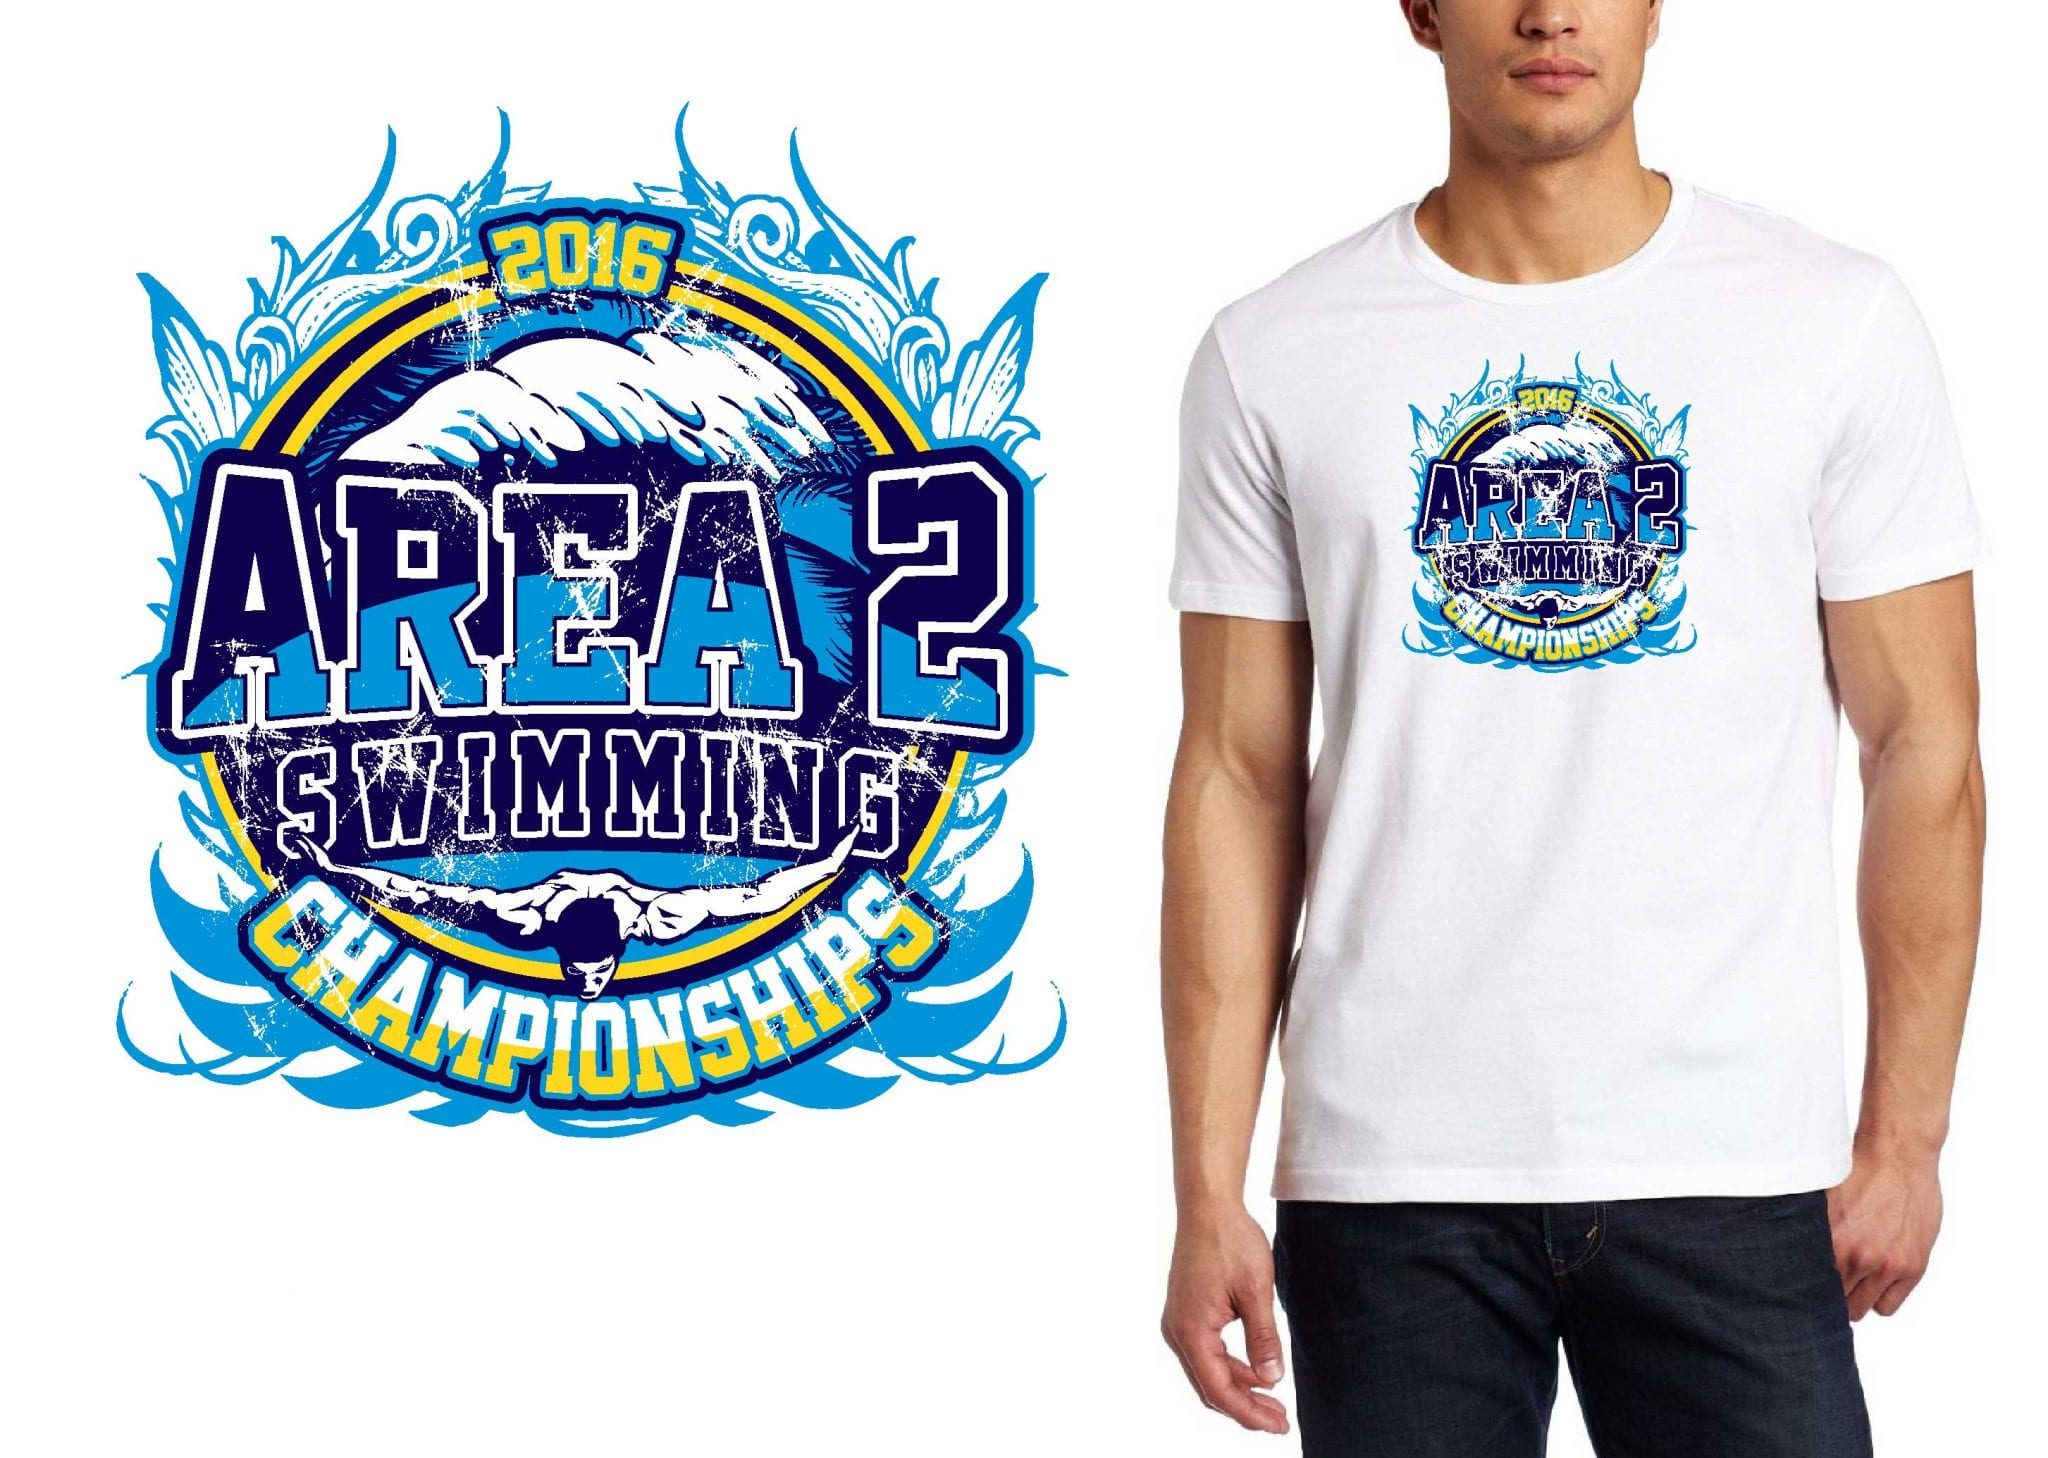 VECTOR LOGO DESIGN FOR PRINT July 30 31 2016 Area 2 Swimming Championships Salesforce Enterprise Edition swimming event